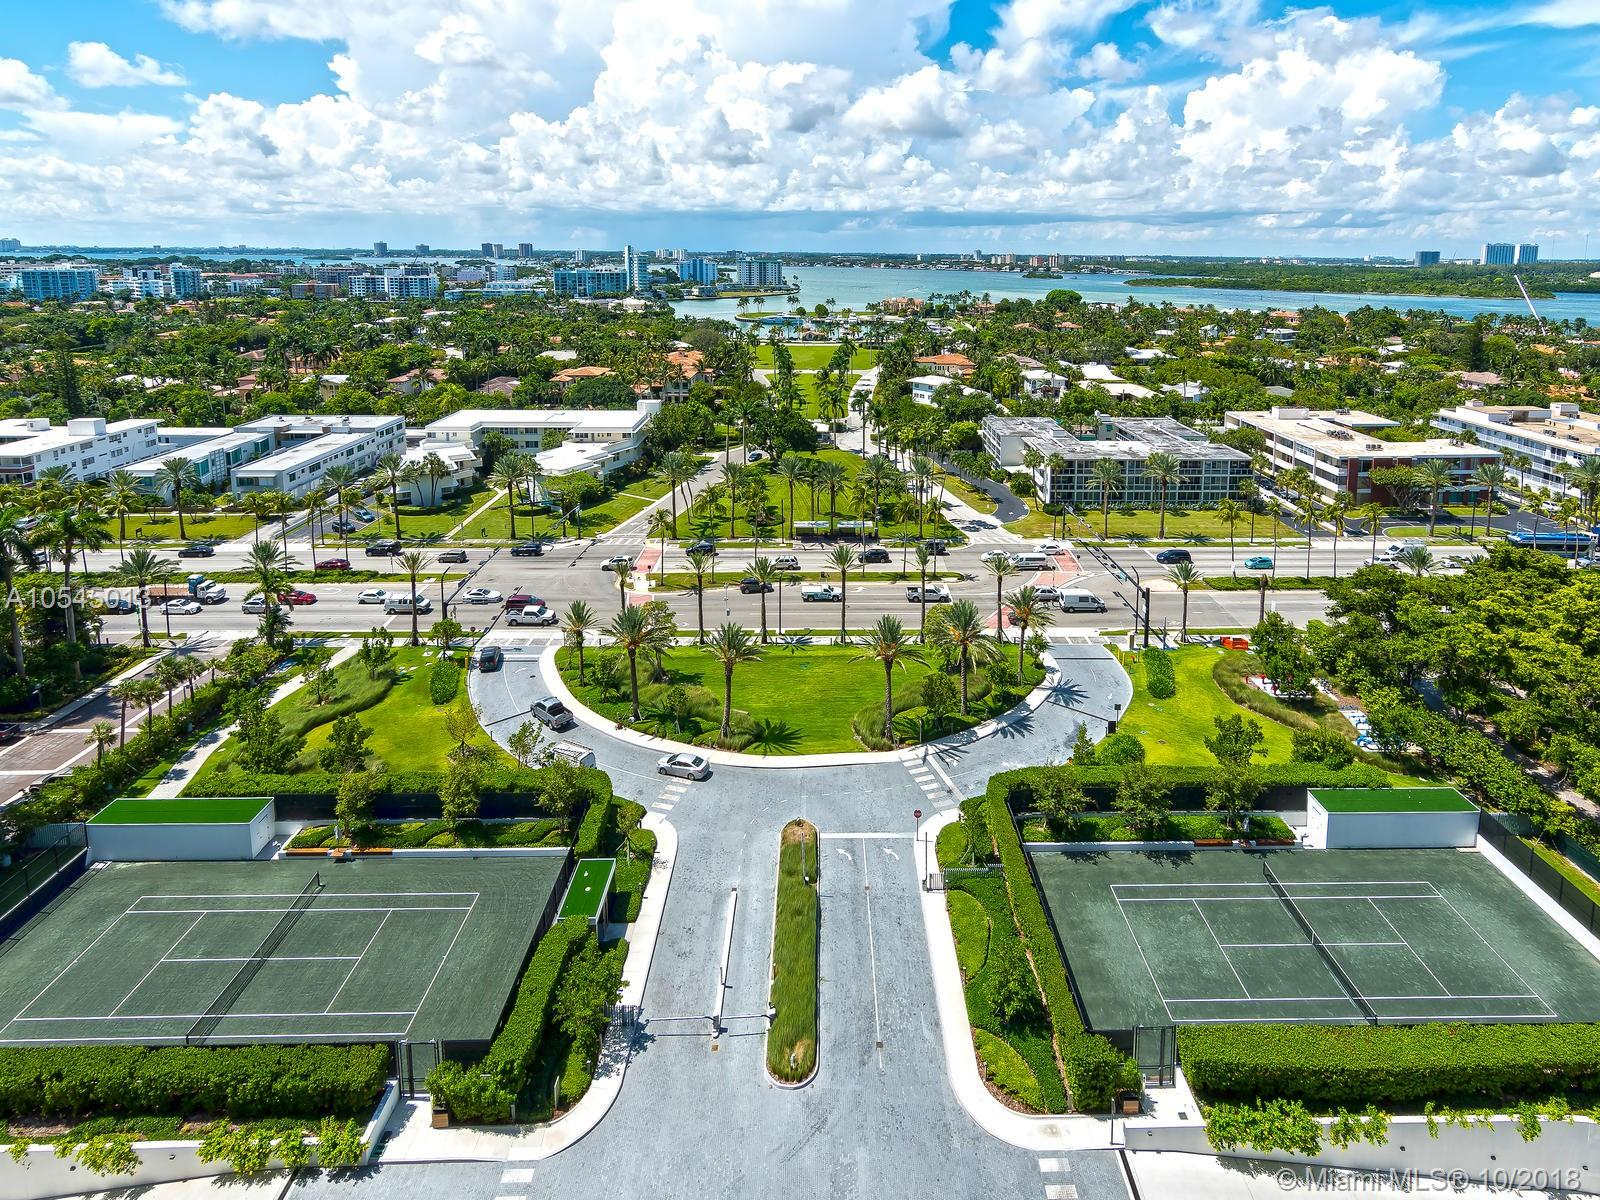 HUGE PRICE REDUCTION! AMAZING OPPORTUNITY IN THE NEWEST BUILDING OF BAL HARBOUR!  Spectacular 2 Bedroom + Den with 3 full bathrooms. Spacious floor plan with great sunset views from the 10 foot deep balcony. The apartment comes with top of the line Gaggenau appliances. Oceana Bal Harbour sits on a 5.5 acres right on the ocean. The building offers 5 star amenities such as state of the art spa and fitness, restaurant operated by the successful NY restauranteur Stephen Starr, two heated pools, 2 tennis courts, movie theater, kid's room, 24 hour concierge and beach service. Easy to show.